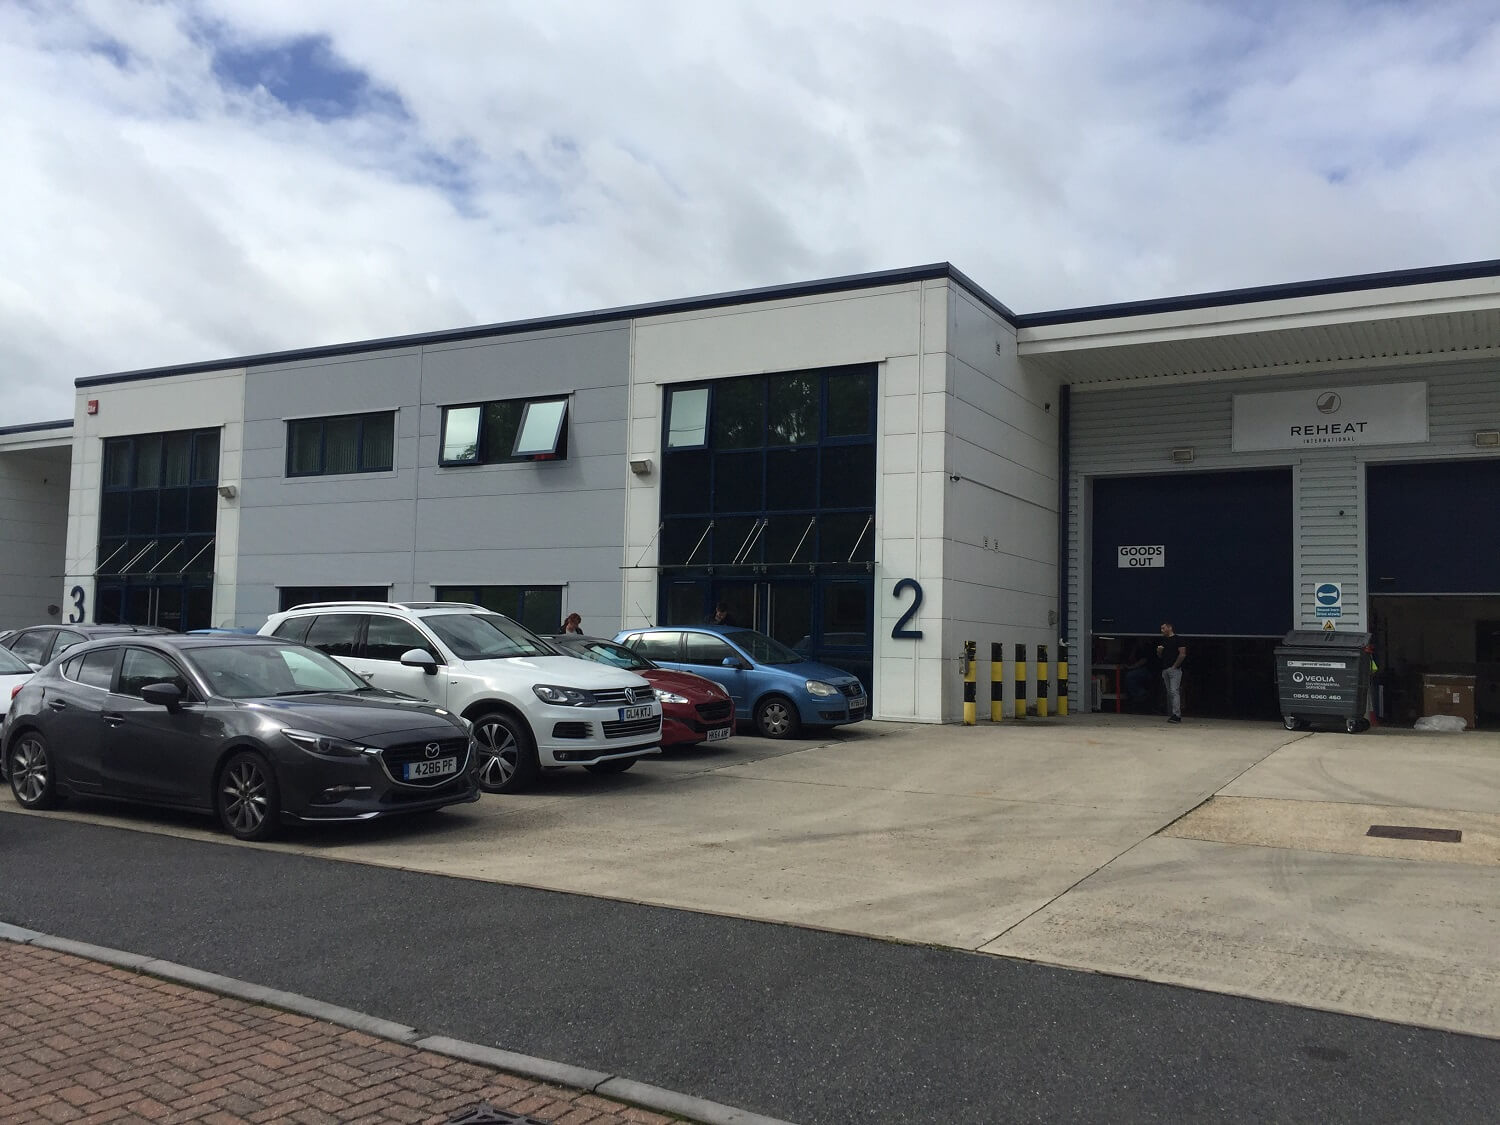 Alton Industrial Investment sale – Completed